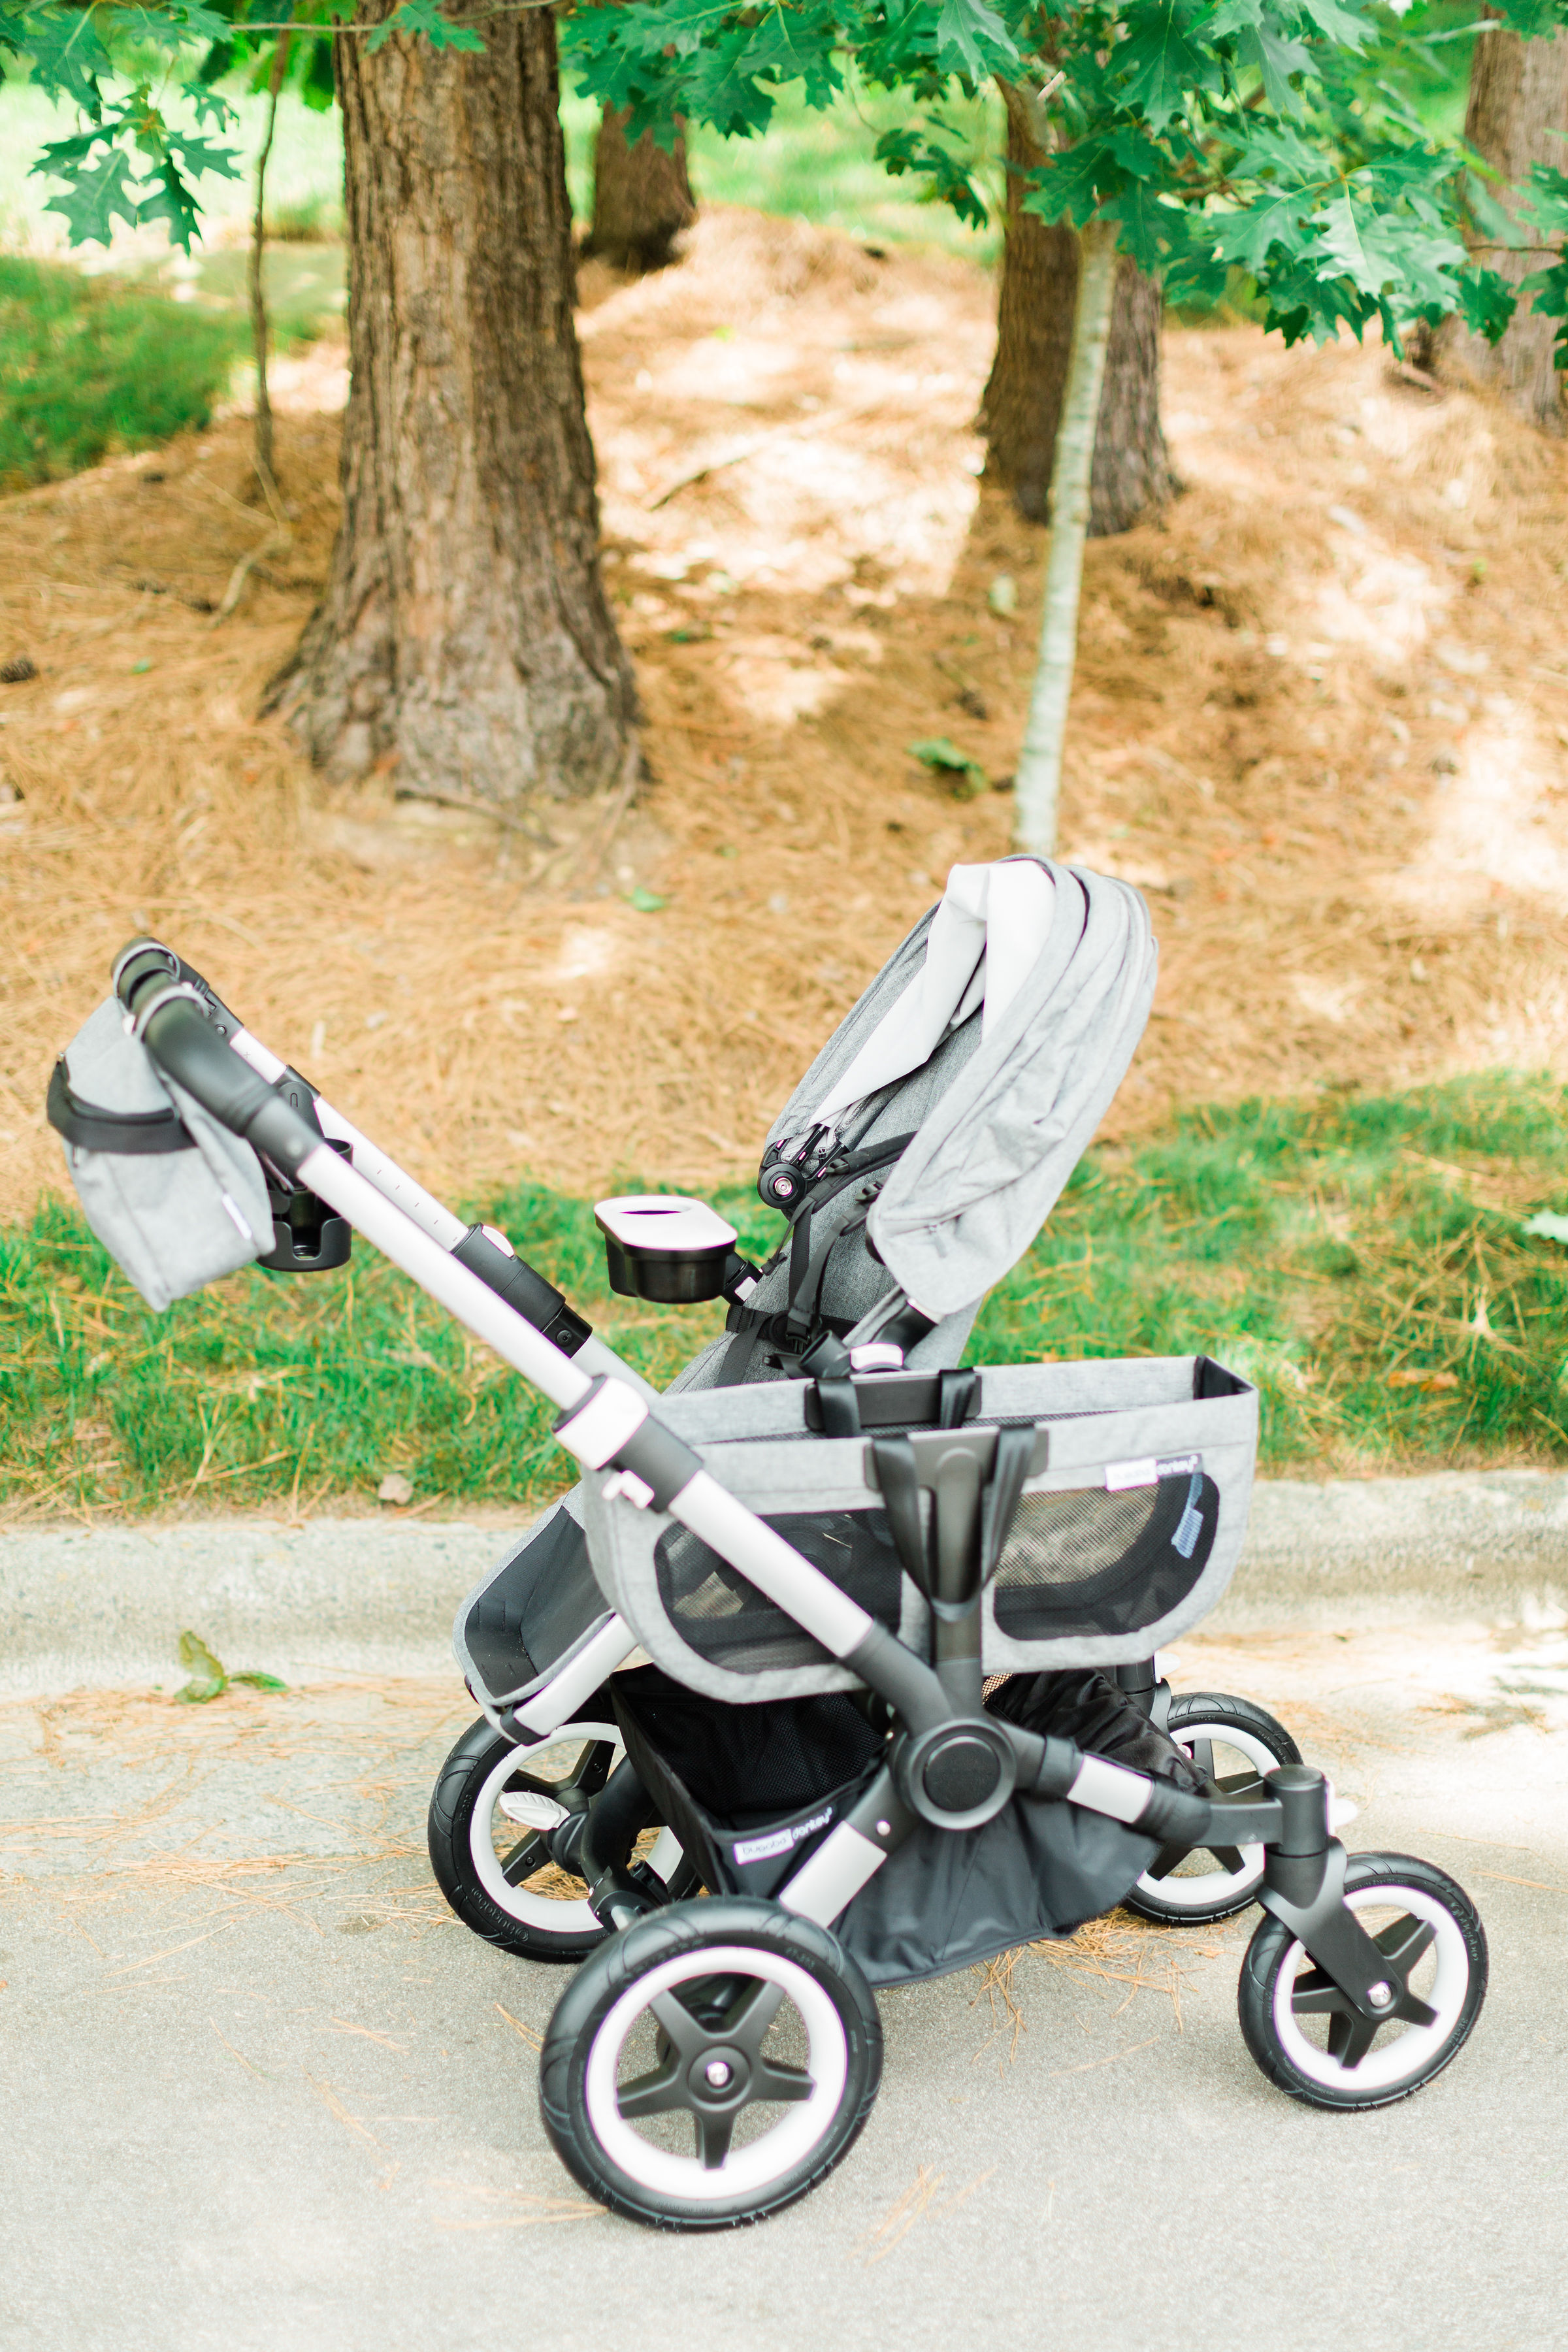 stroller can now accommodate 50 pounds per seat